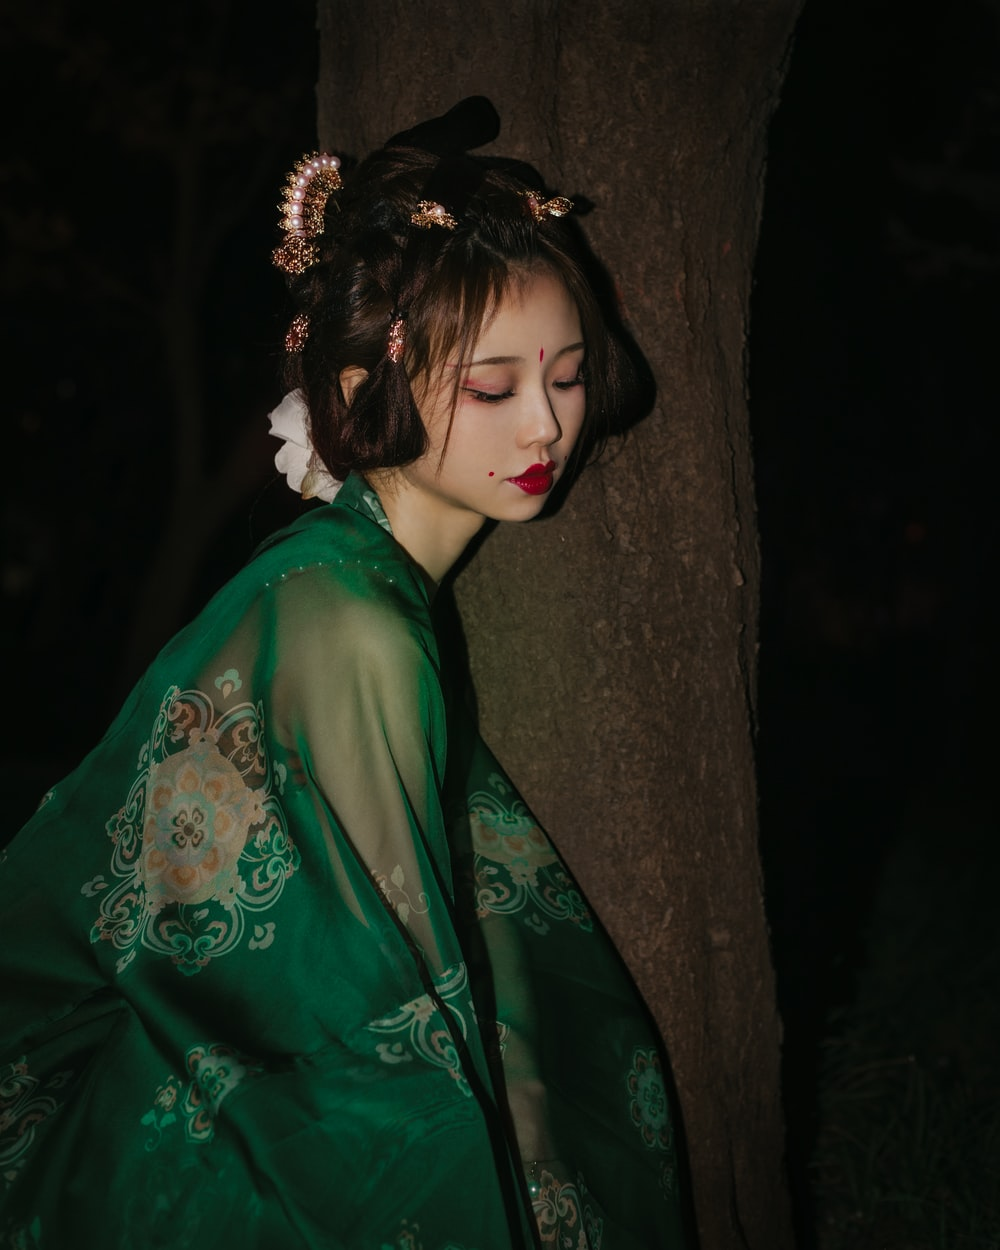 woman in green and white floral robe